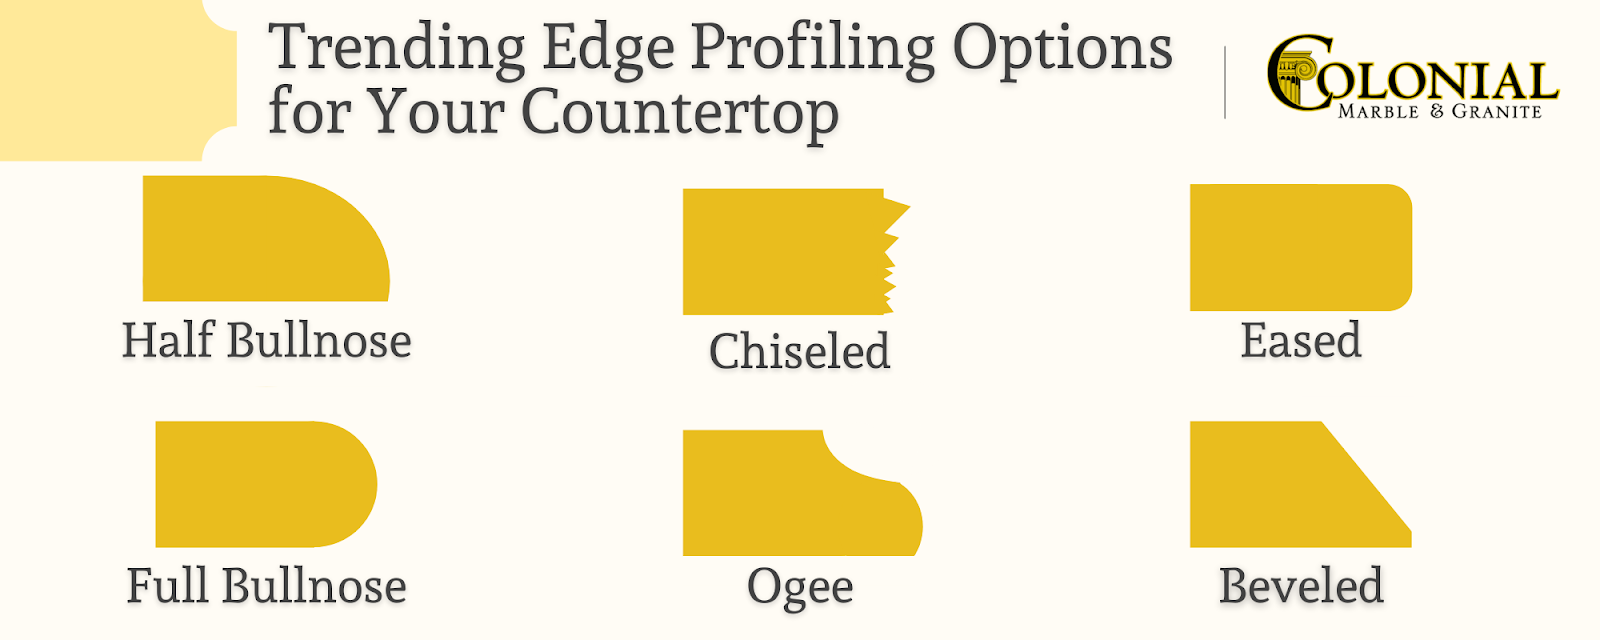 infographic depicting different edge profiling options for countertops